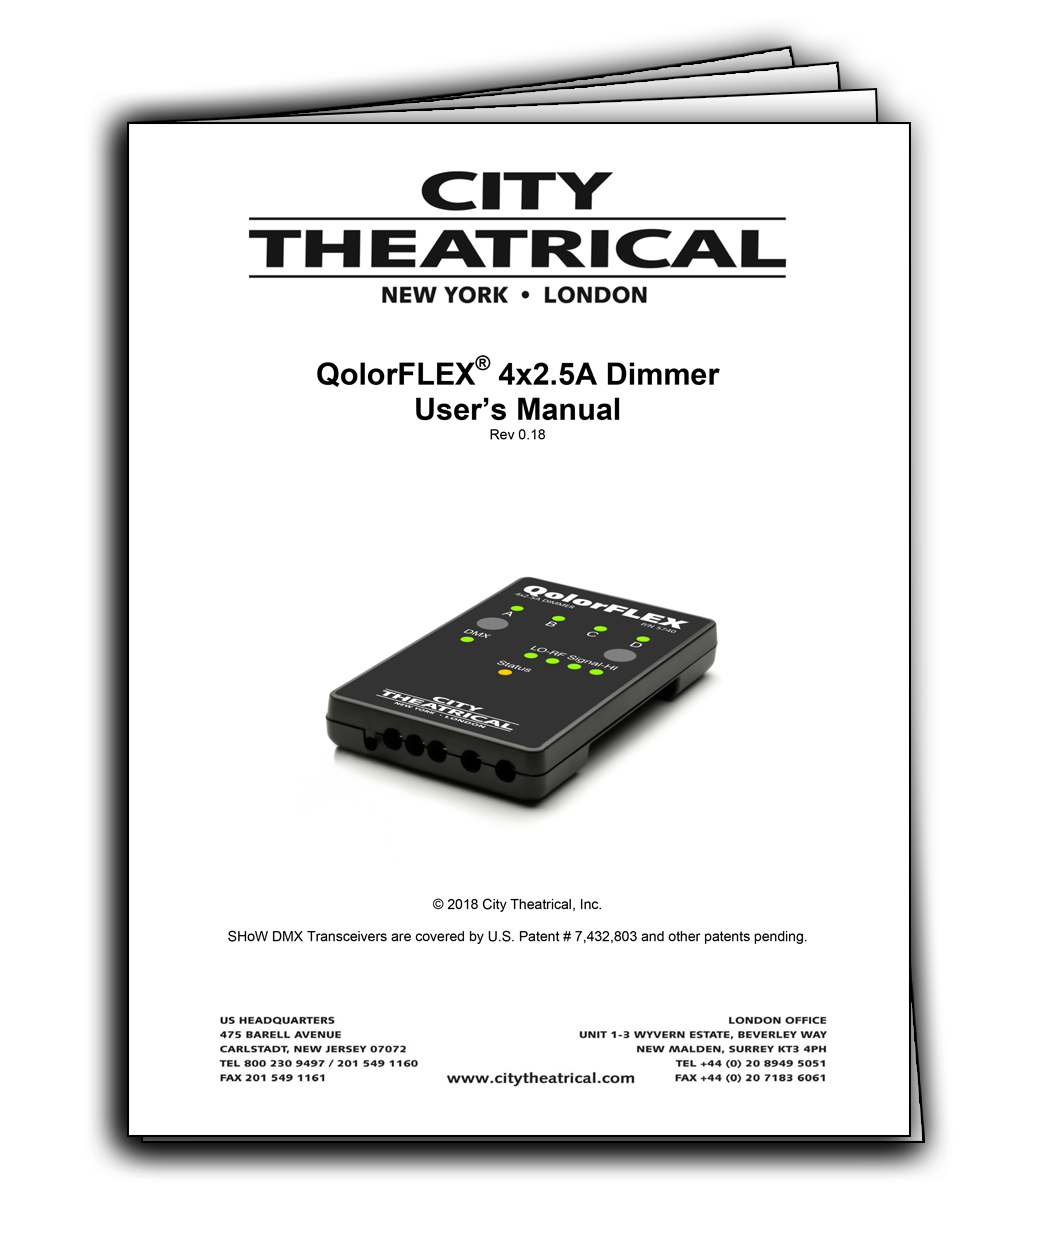 QolorFLEX 4x2.5A Dimmer User's Manual